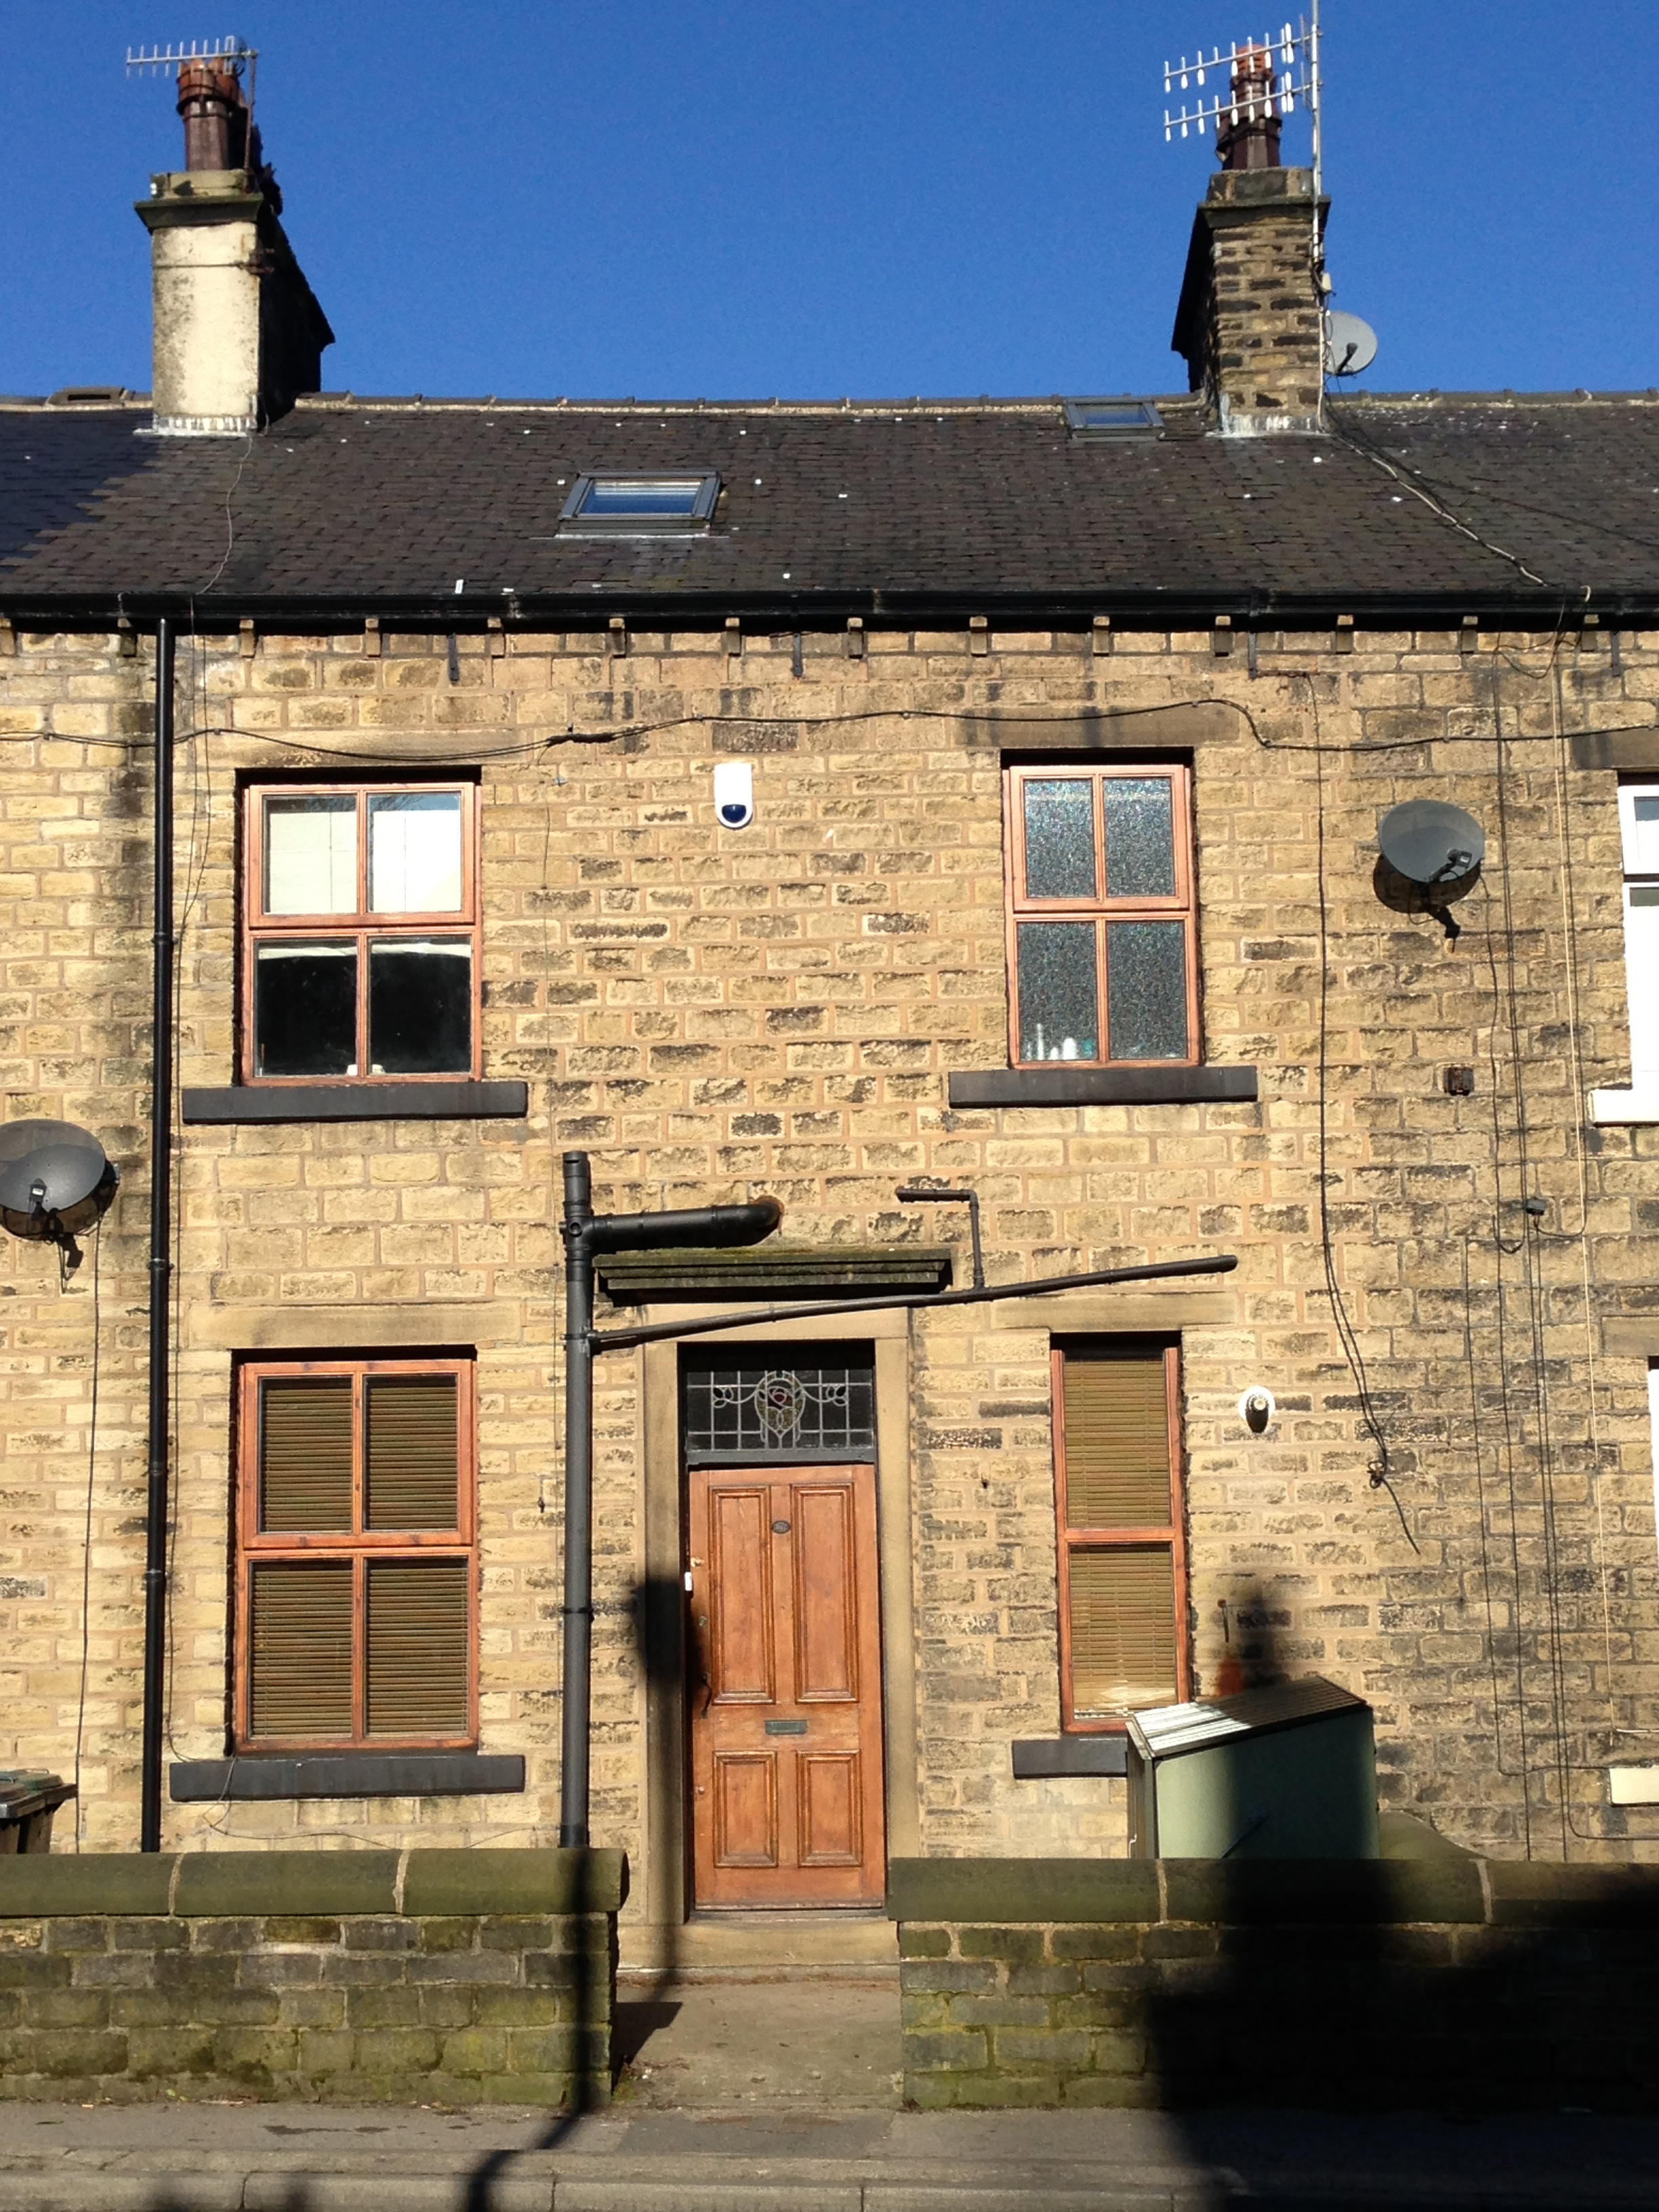 3 Bedroom Unfurnished Terraced To Rent On Manchester Road, Slaithwaite,  Huddersfield, HD7 By